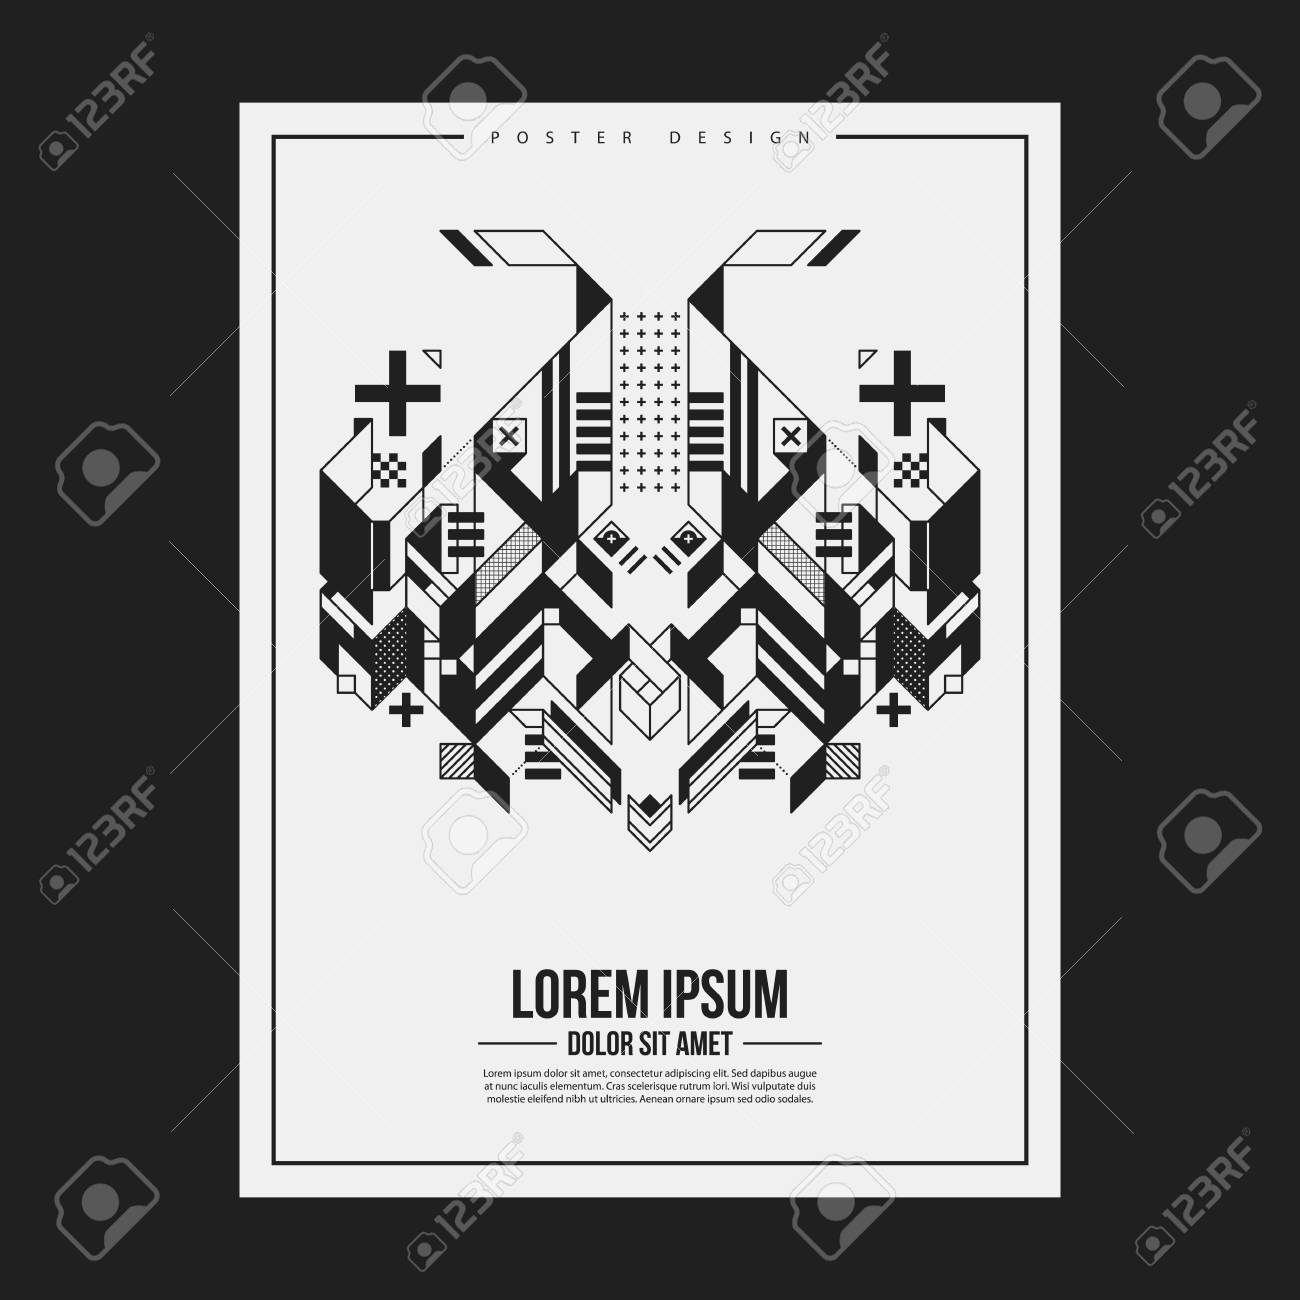 Poster/print design template with symmetric abstract element